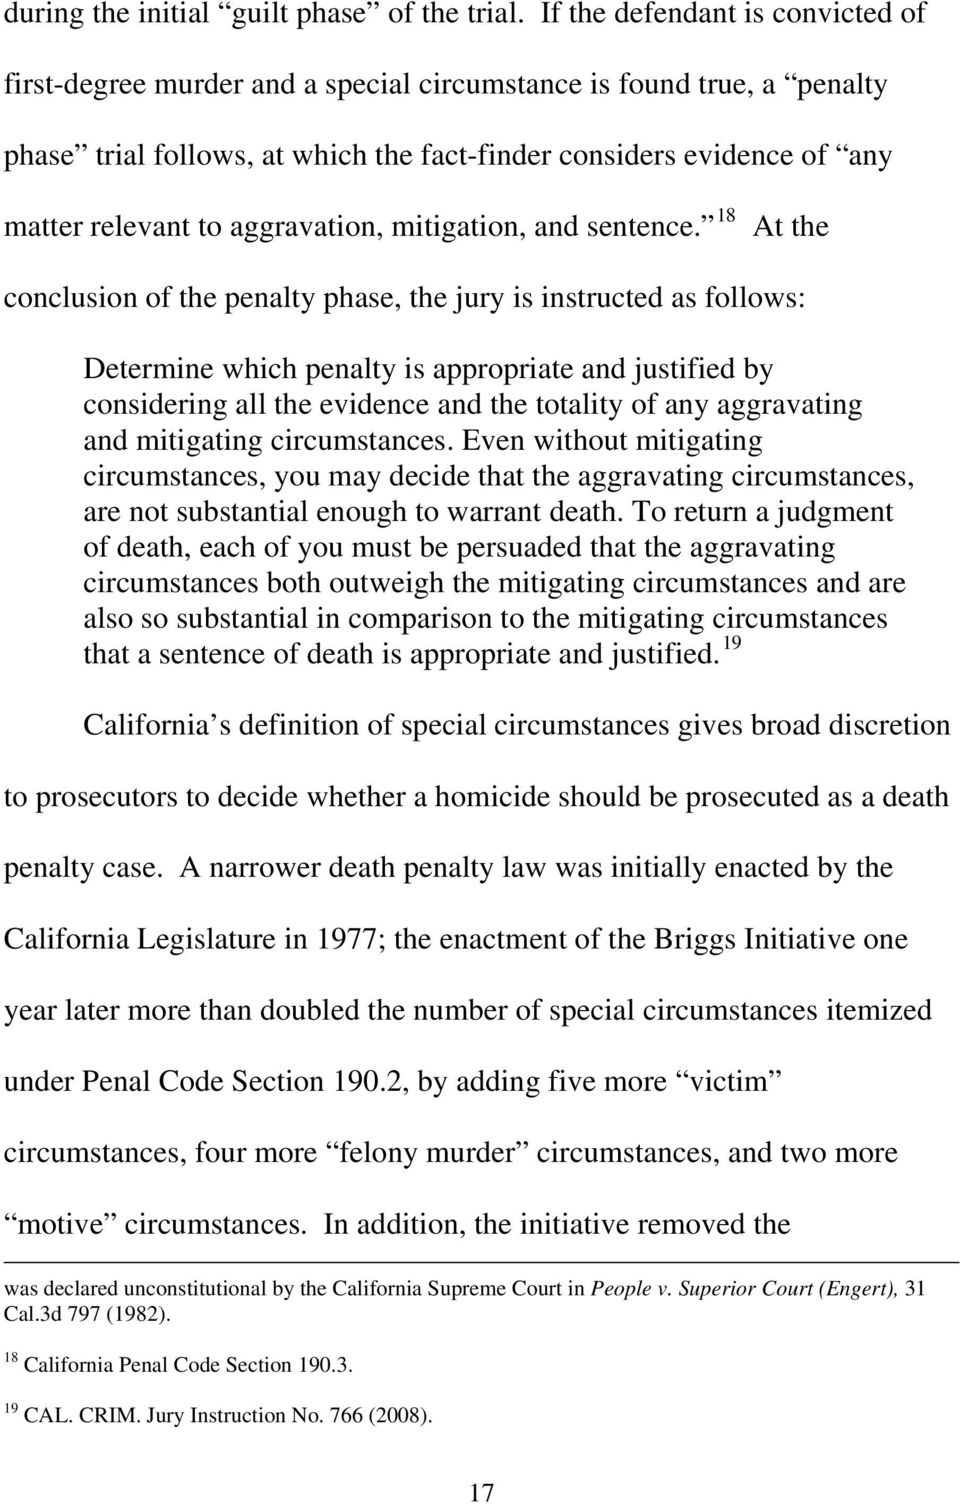 aggravation, mitigation, and sentence.